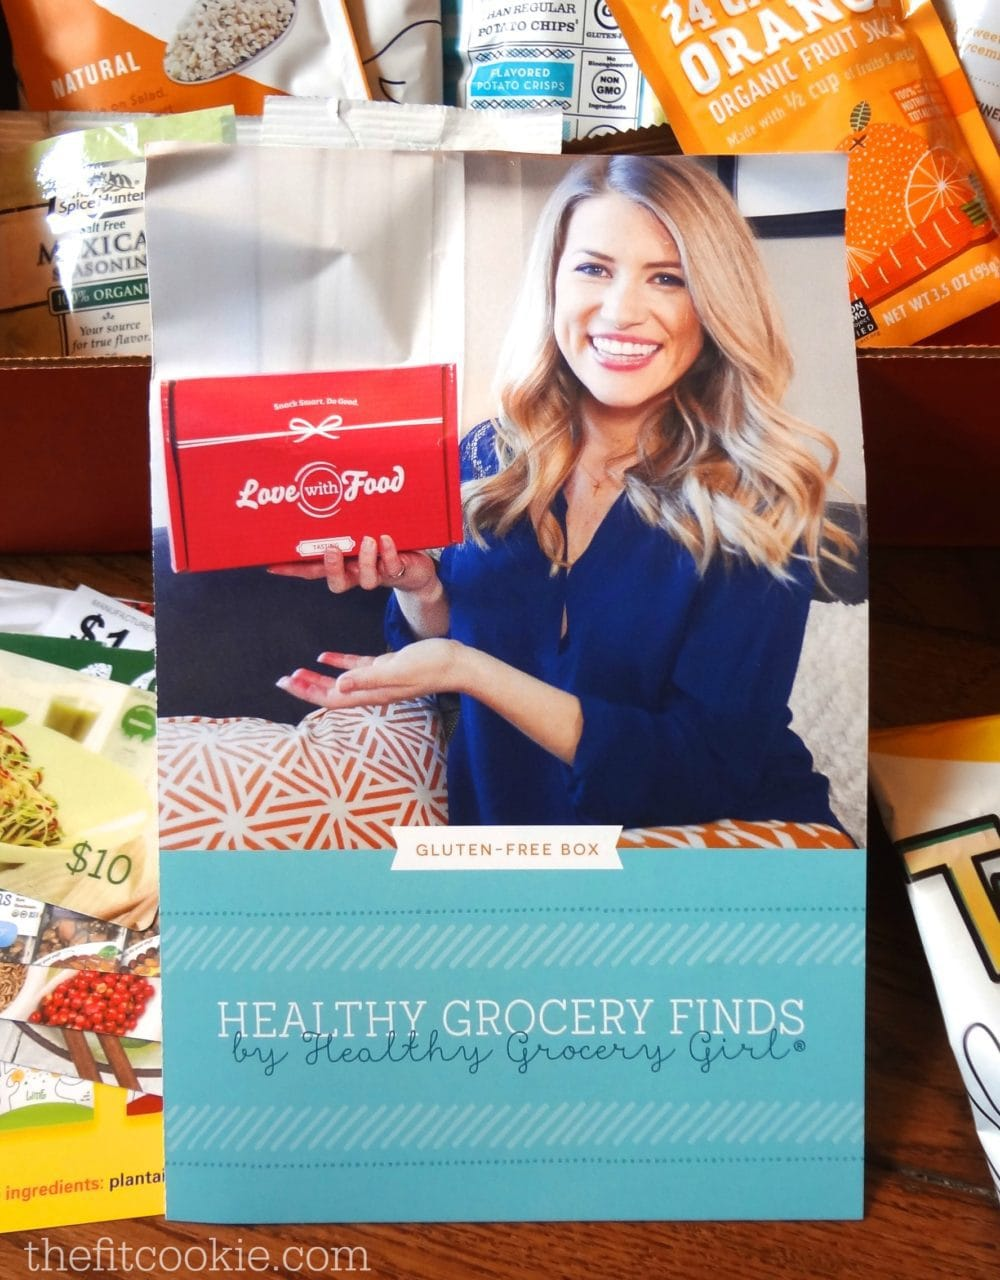 Snack Smart! Love With Food Review - @TheFitCookie #sponsored @LoveWithFood #glutenfree